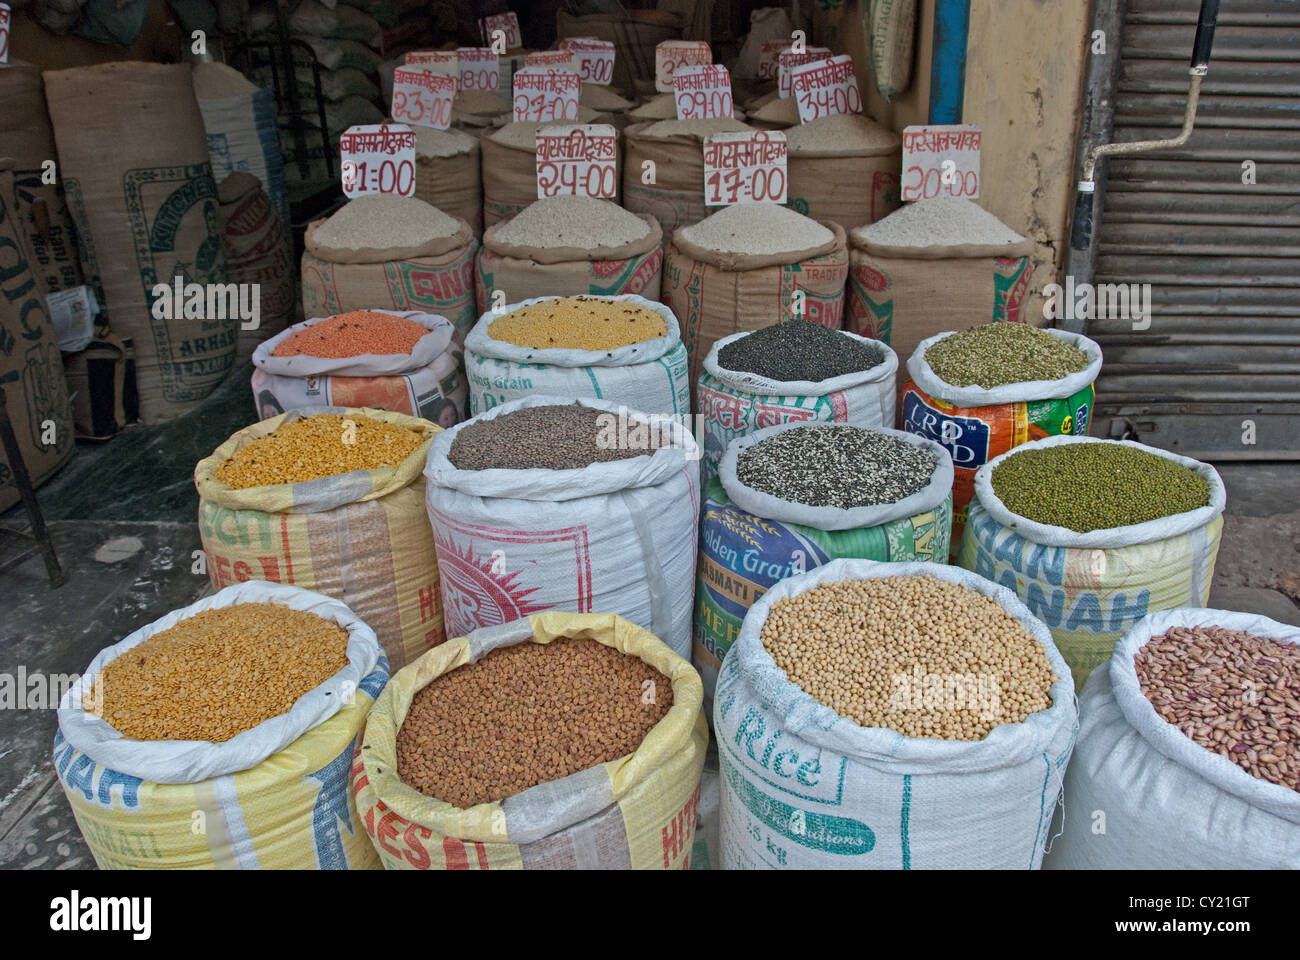 A variety of pulses in sacks displayed in a grocer's store in India. - Stock Image